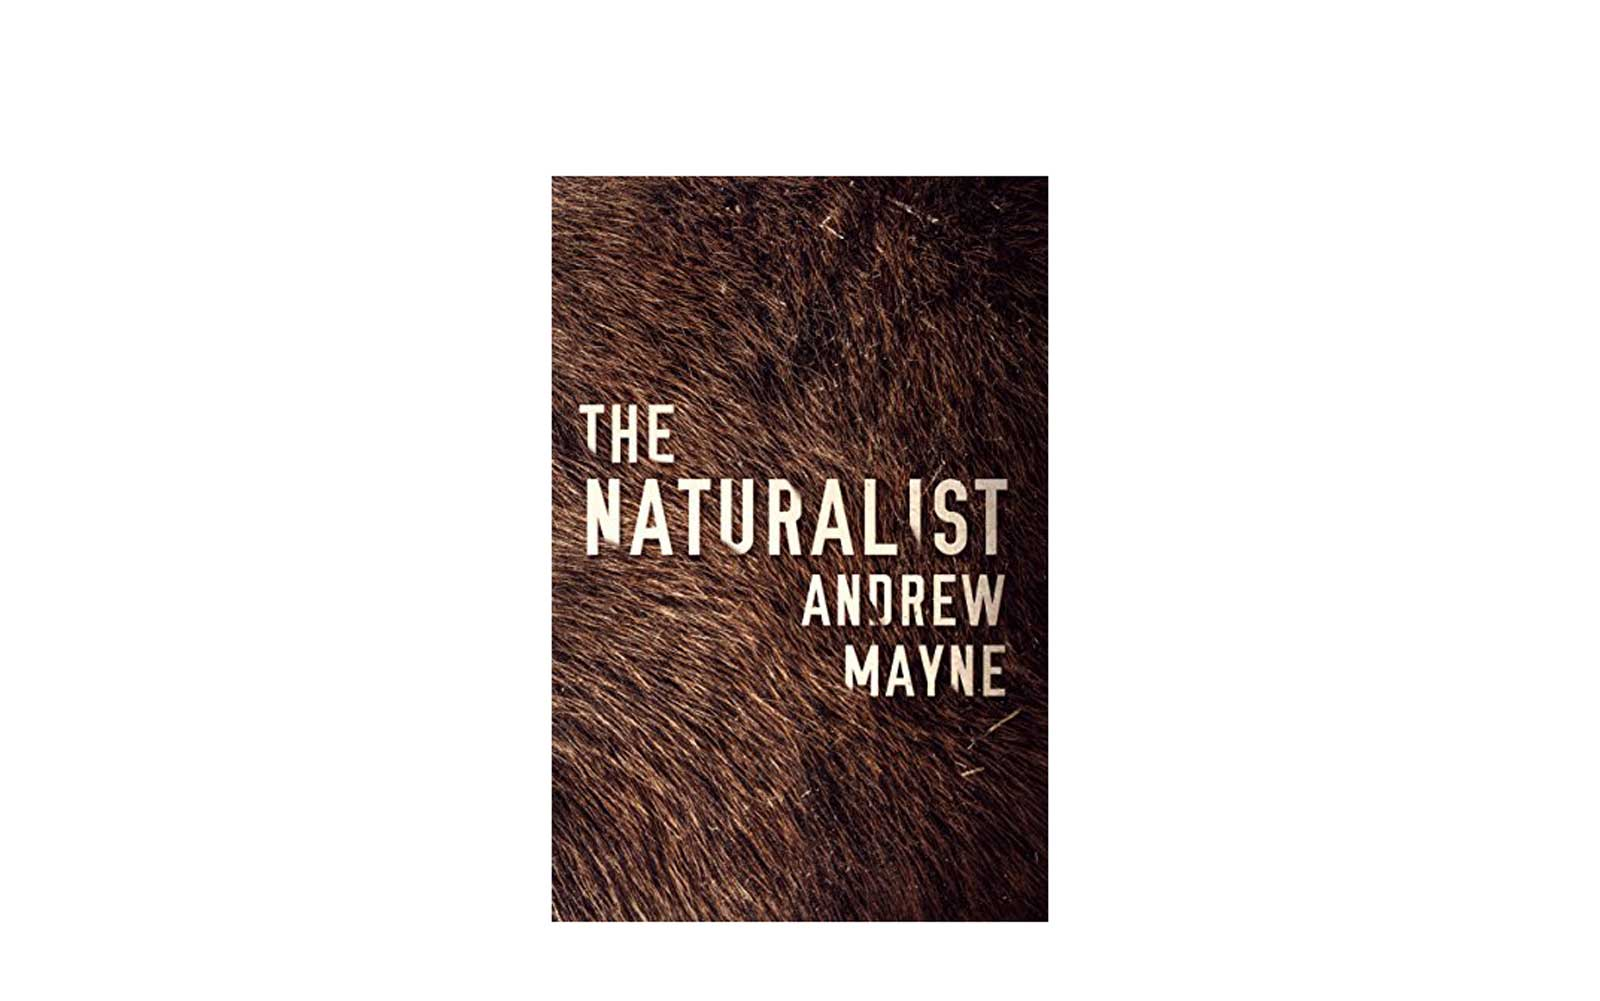 20 most popular Kindle books 2017 The Naturalist